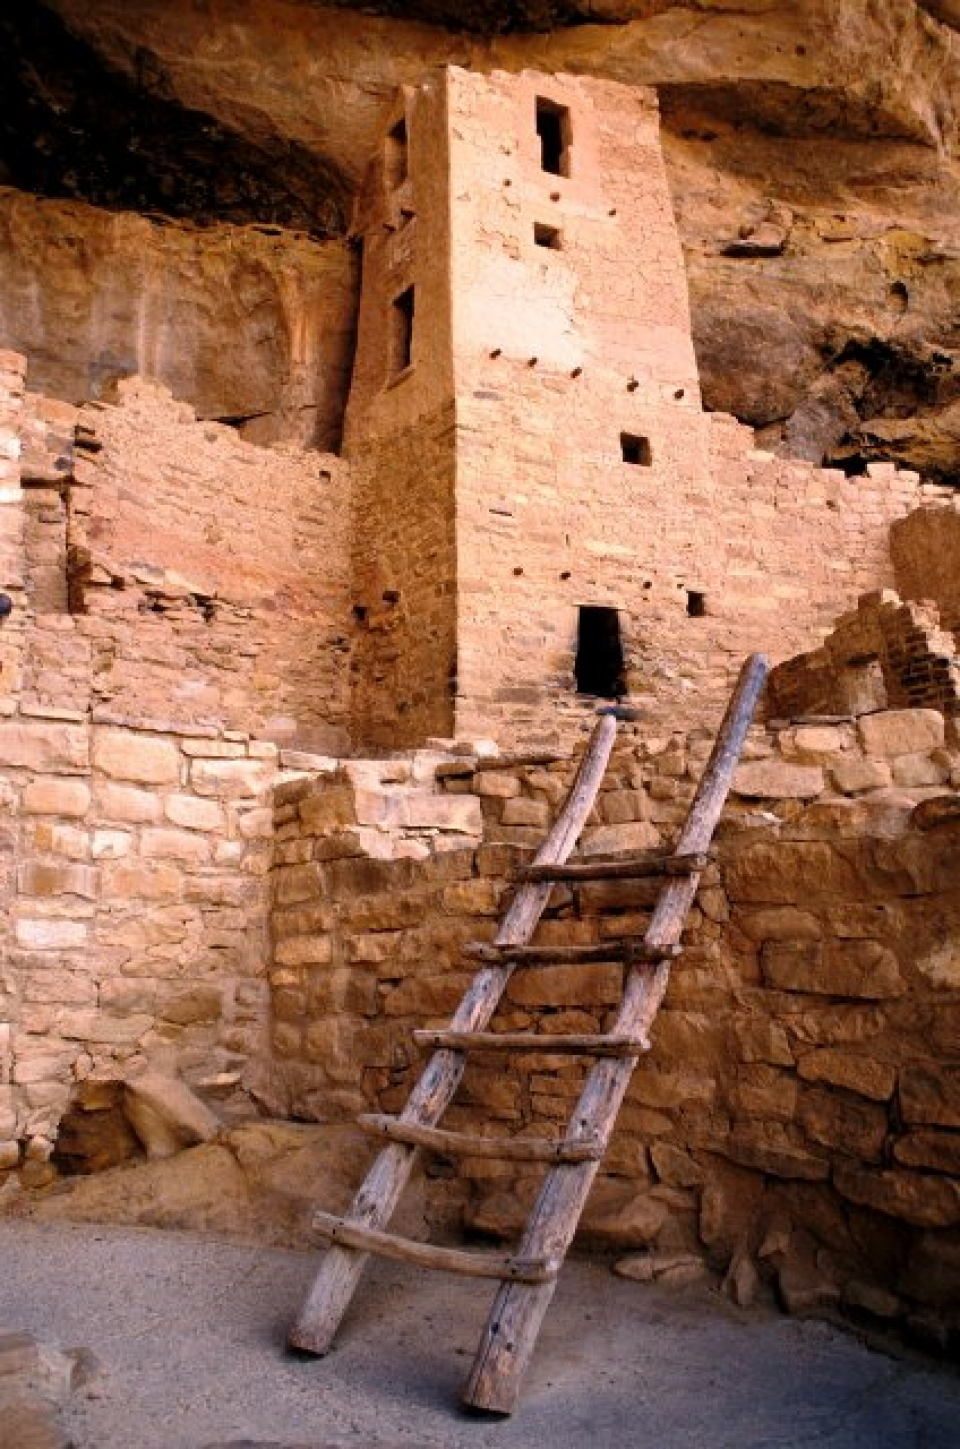 Ancient Native American settlements at Mesa Verde National Park